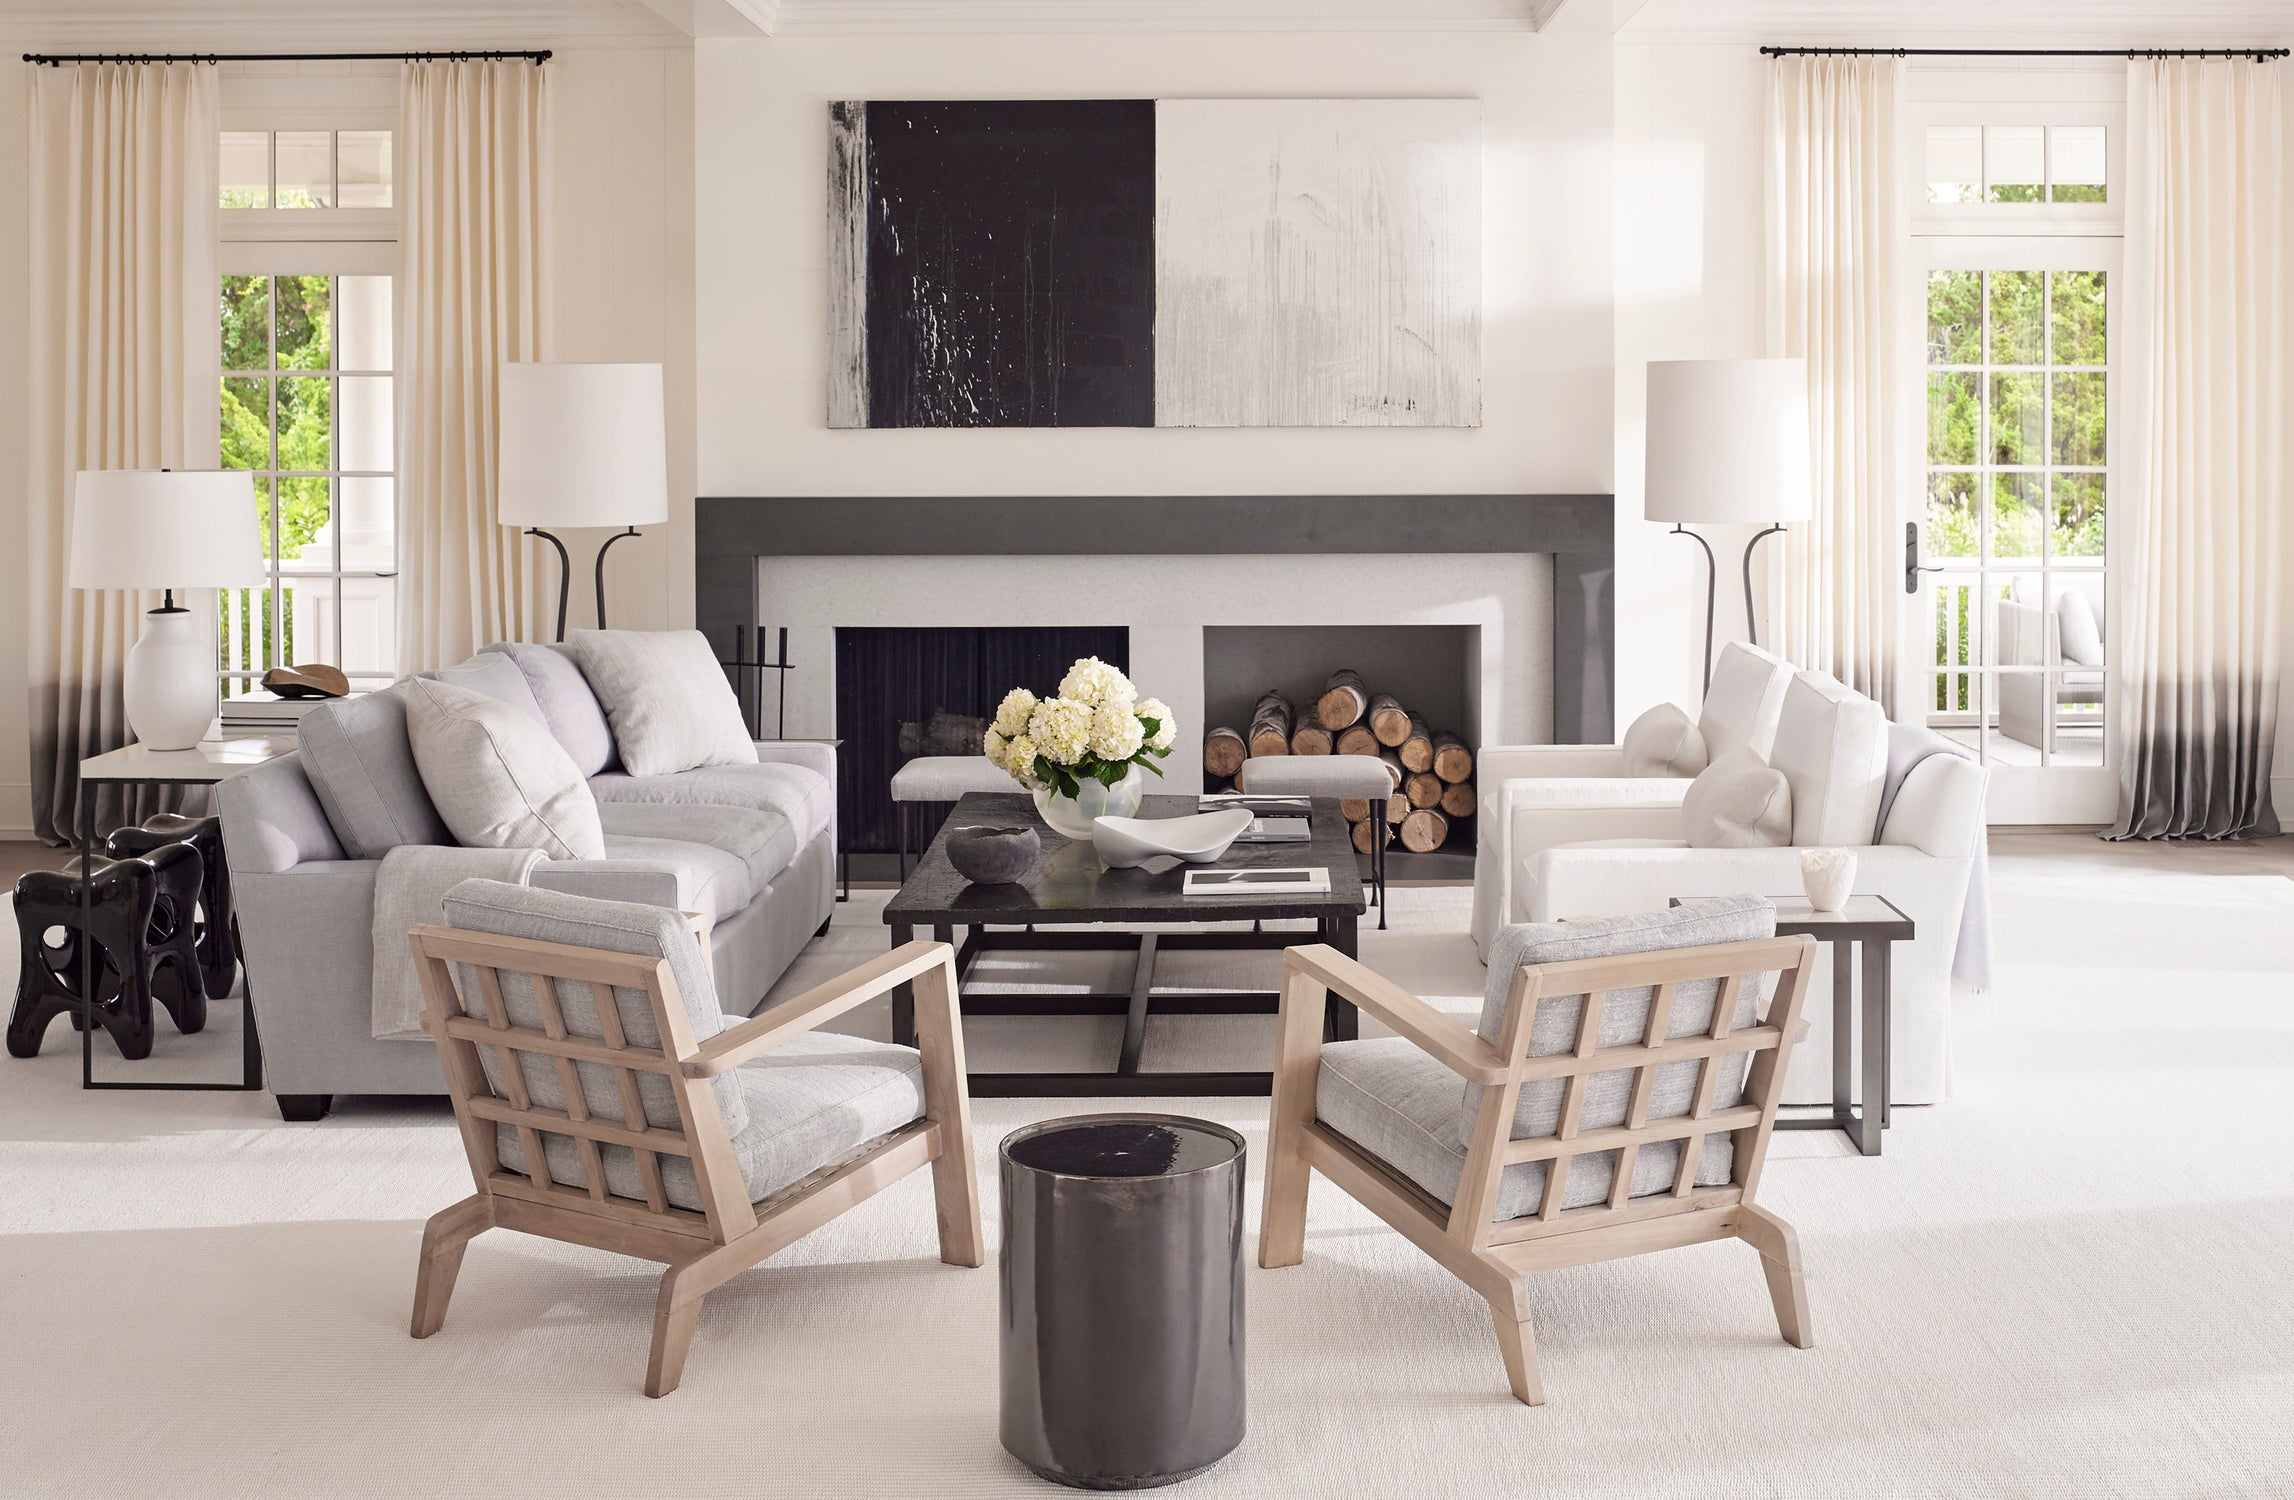 Victoria Hagan Interiors By The 1stdibs 50 On